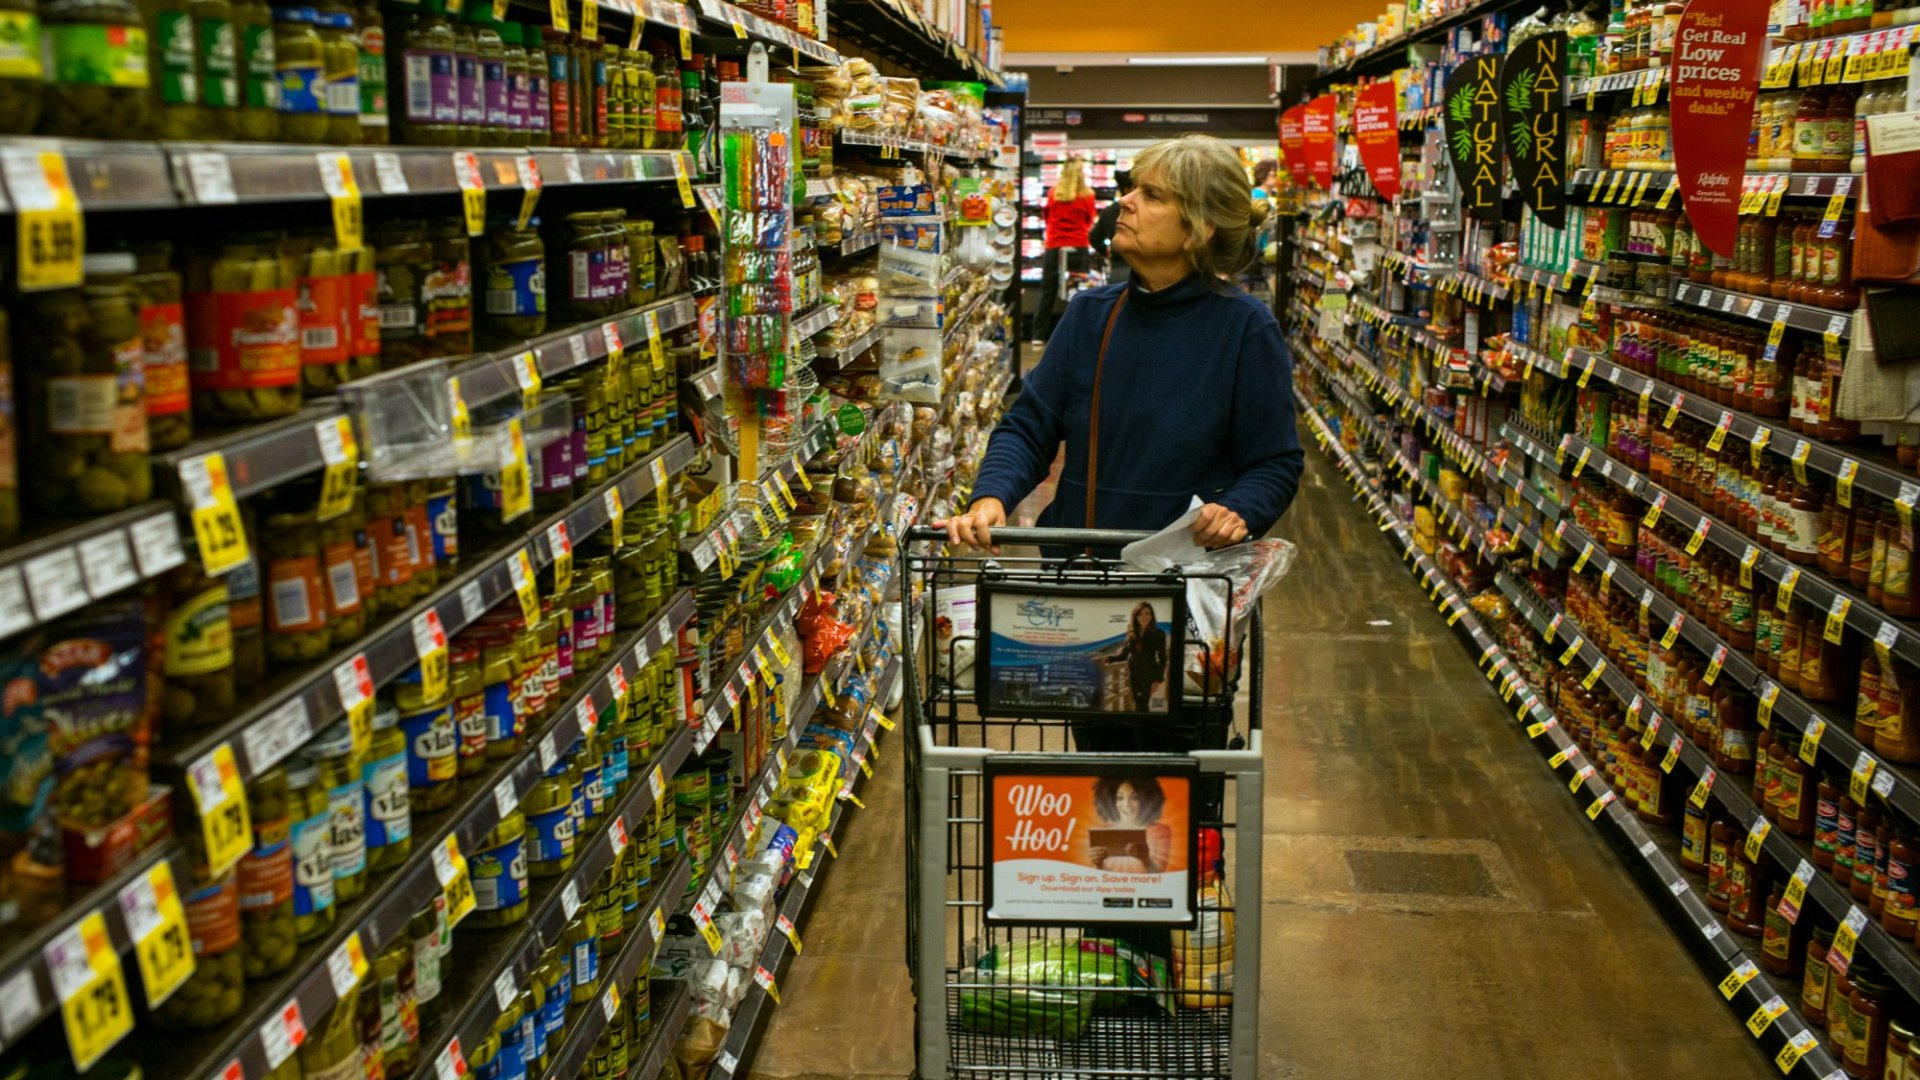 Kroger's New Technology Could Change Grocery Shopping as We Know It